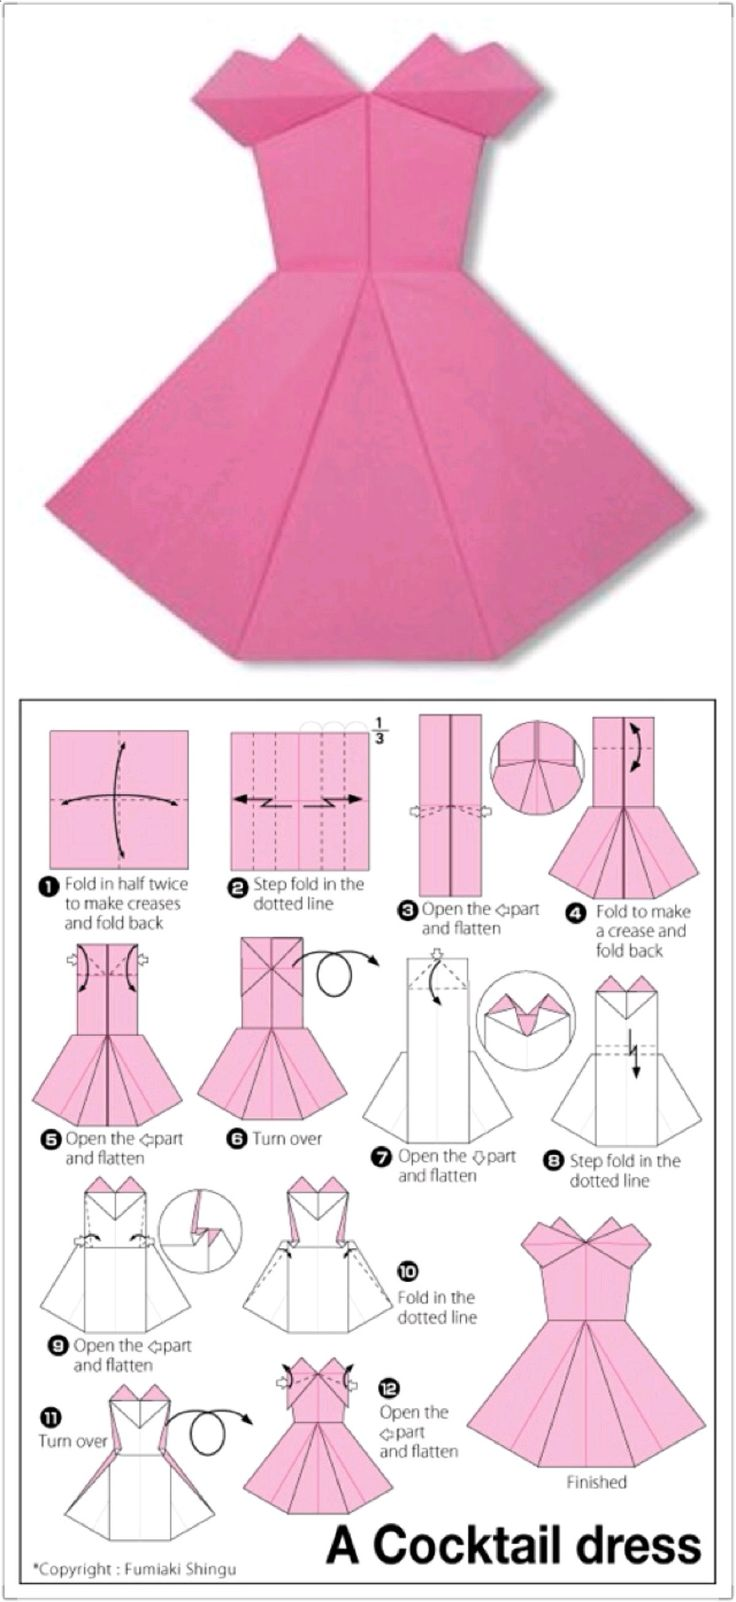 Best 20 pliage serviette ideas on pinterest pliage de serviettes pliage d - Pliage de serviette original ...